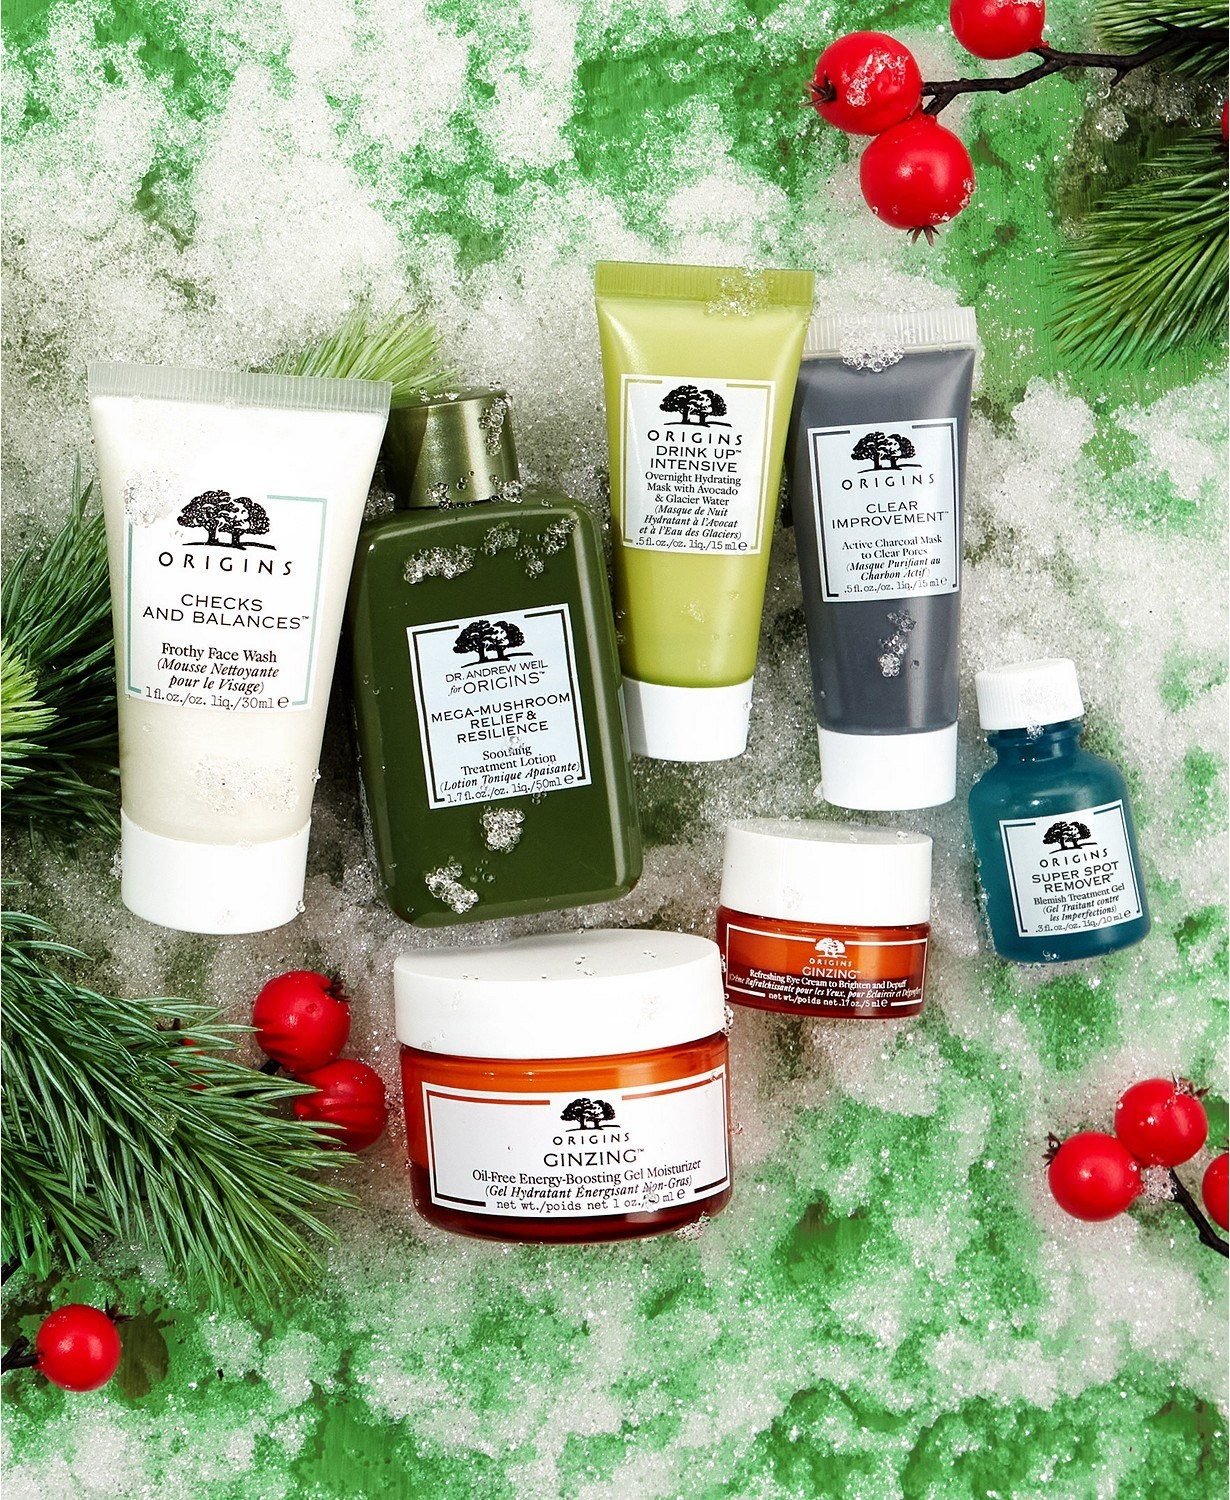 Seven bottles of Origins skin care products on a holiday background